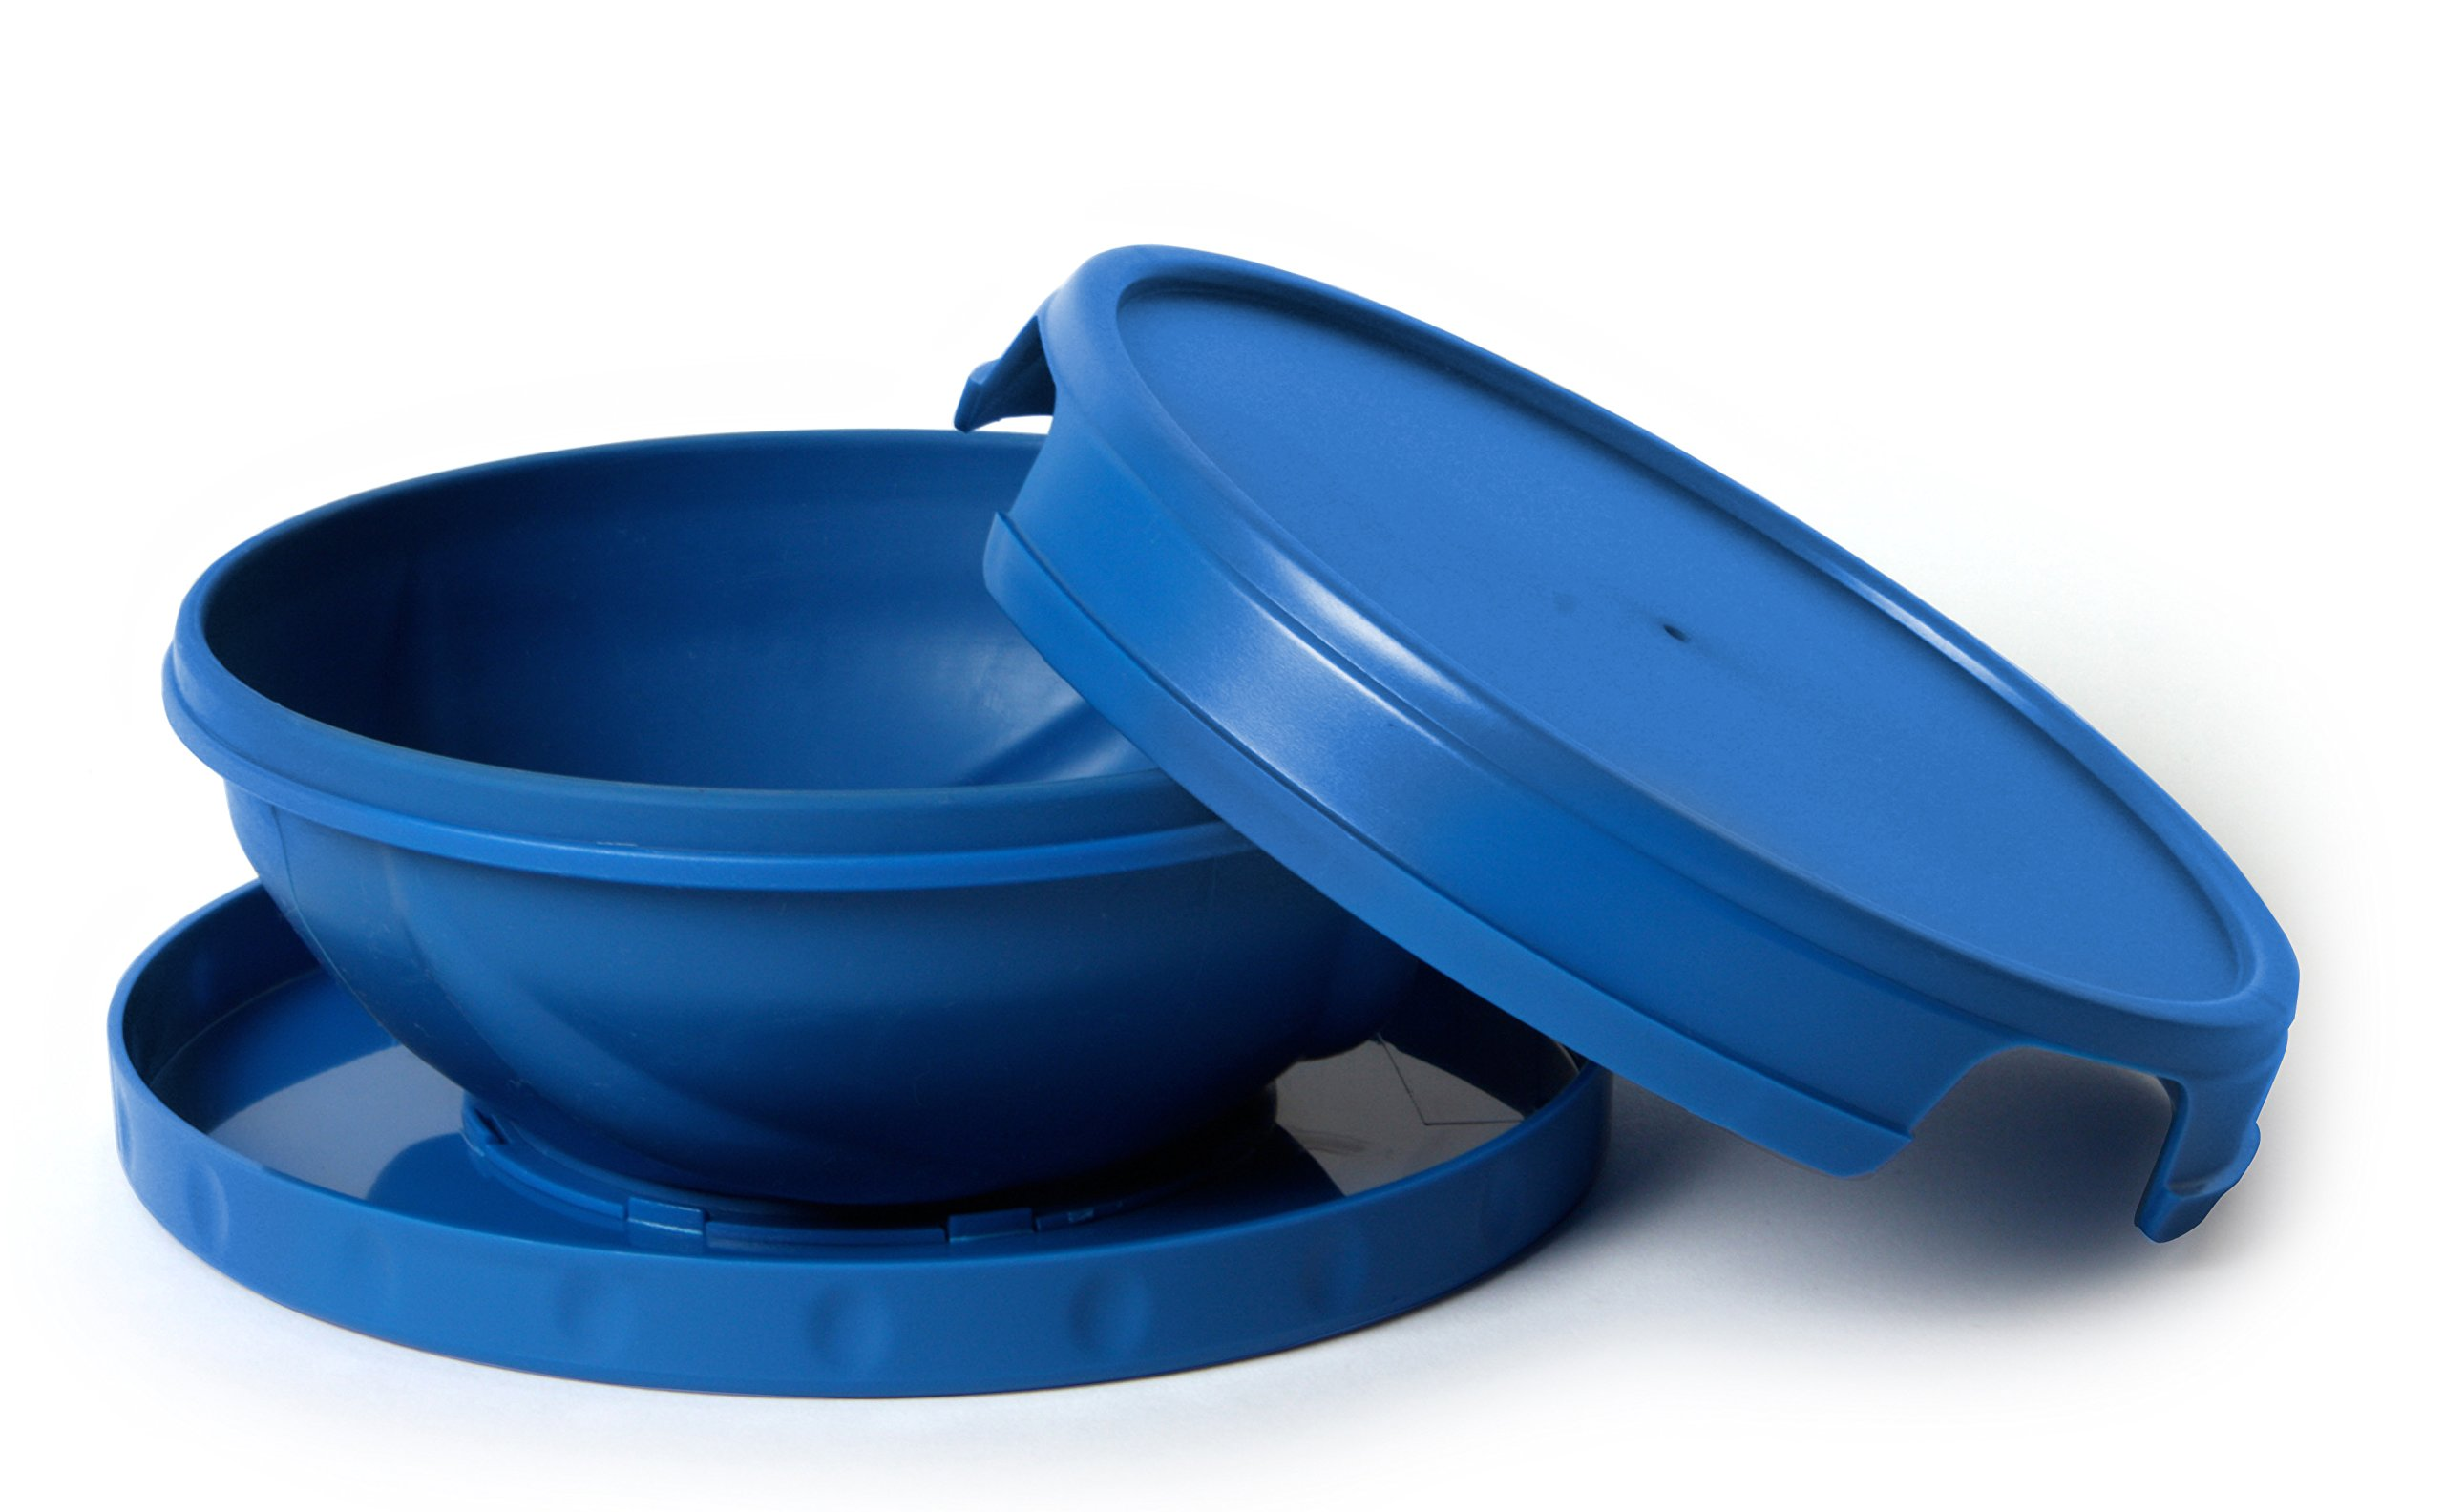 Flatterware Camping Collapsible Bowl Plate Hot Cold Reusable Blue